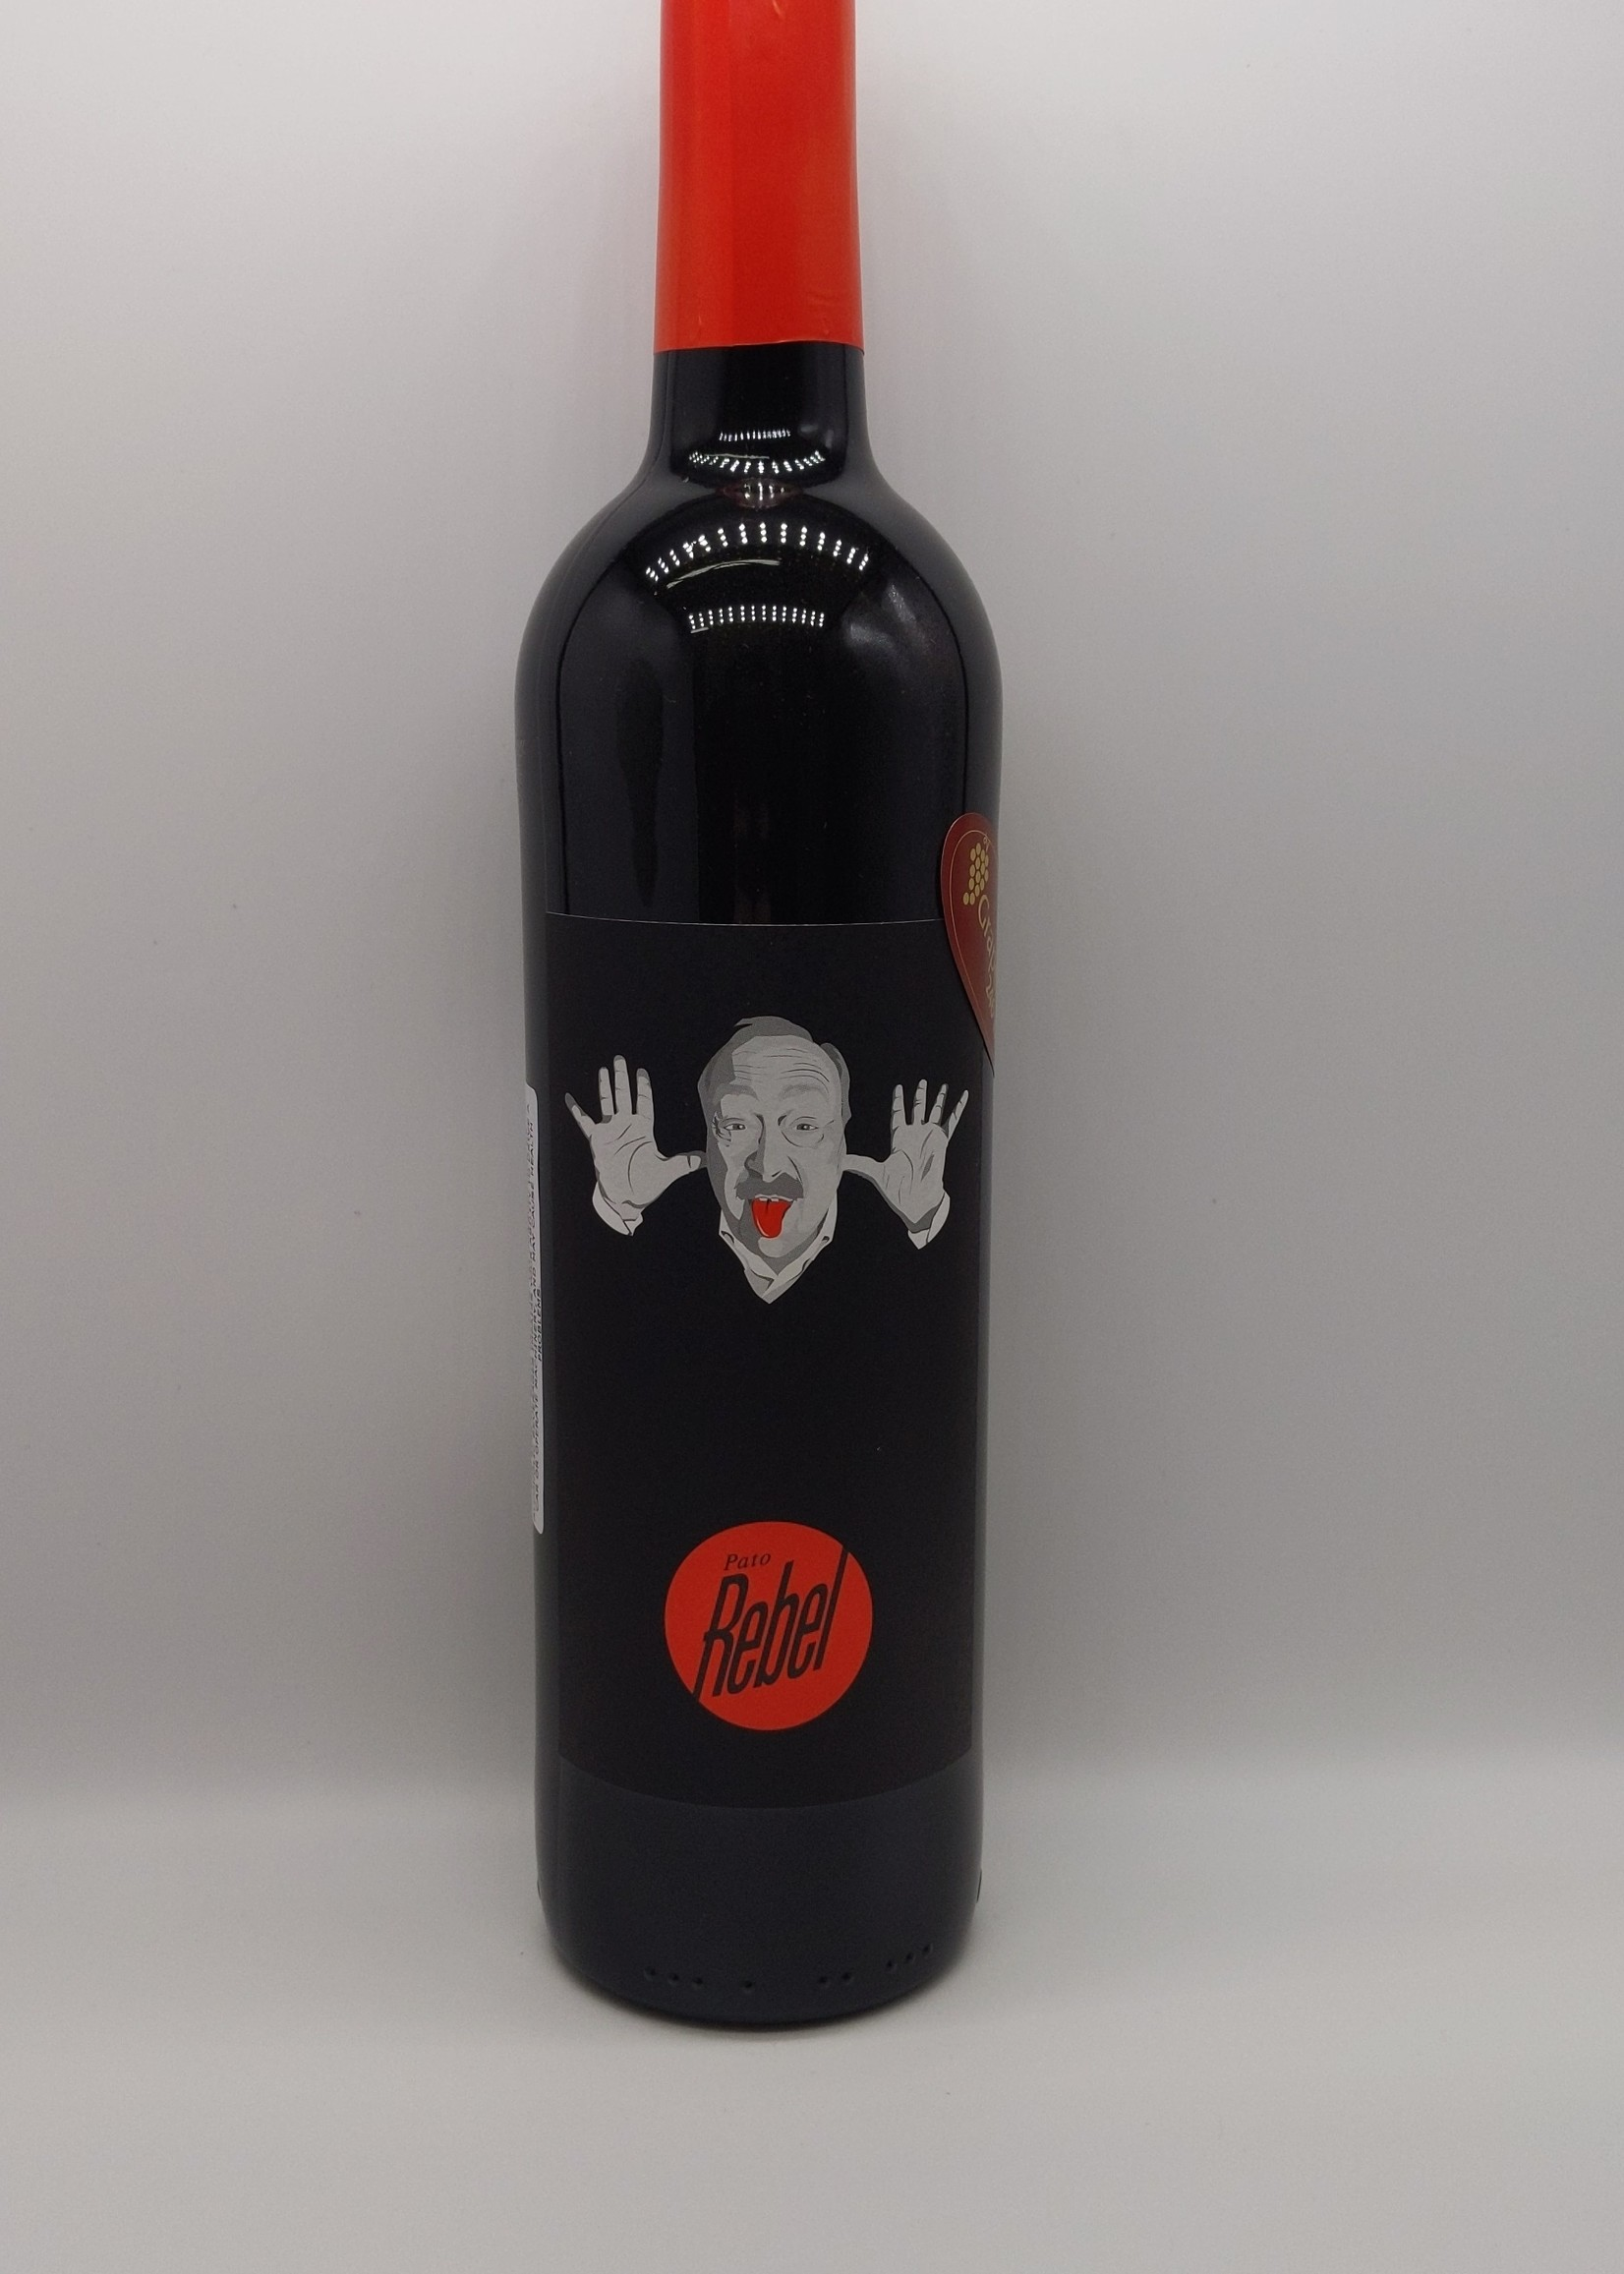 2017 LUIS PATO THE REBEL RED 750ml